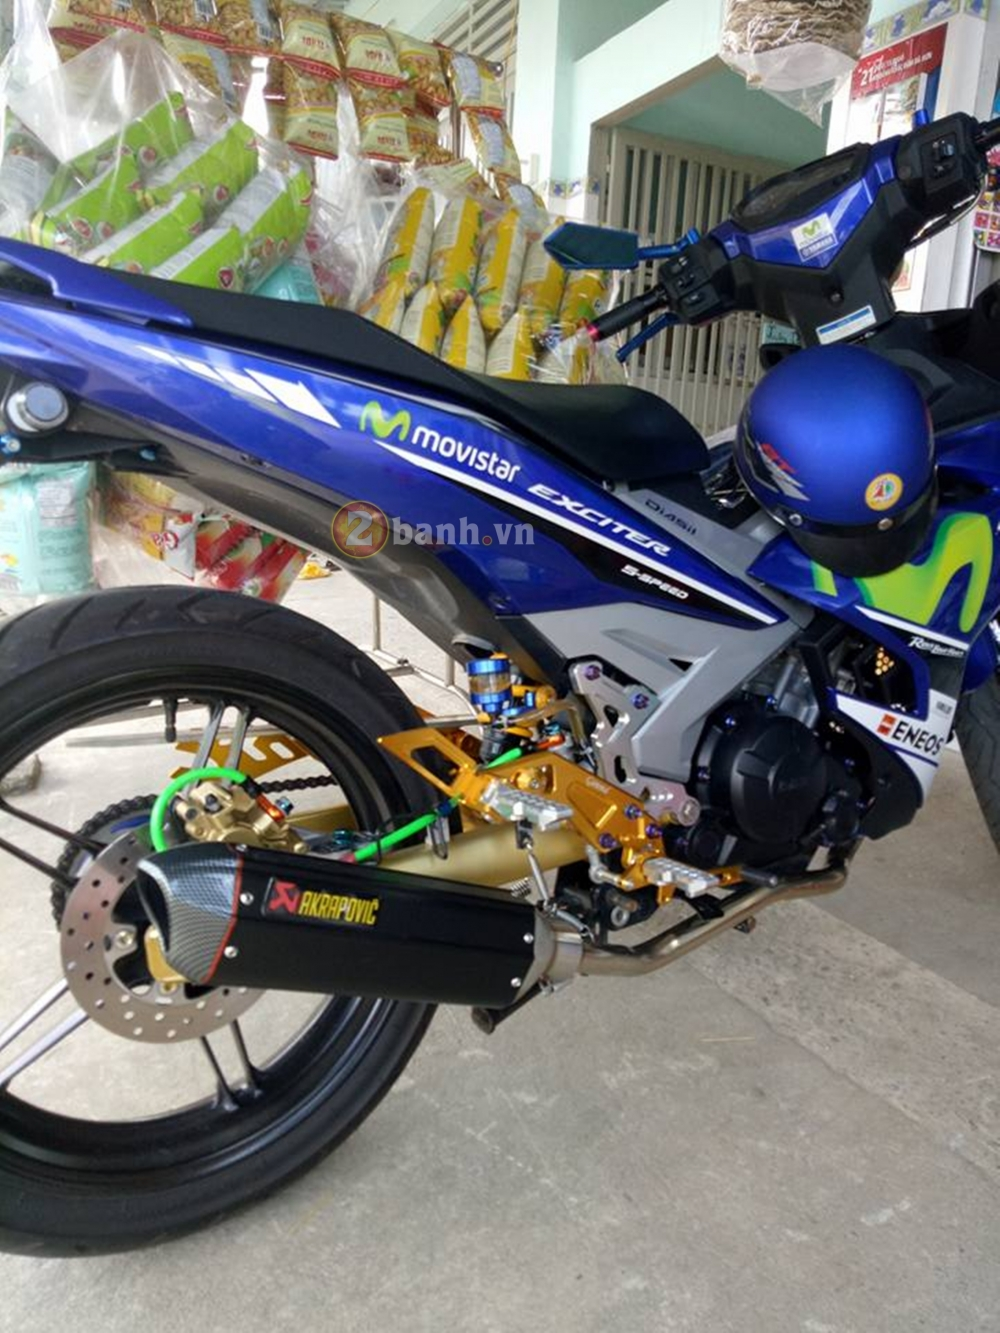 Exciter 150 mac ao Movistar vac sung Akrapovic - 3